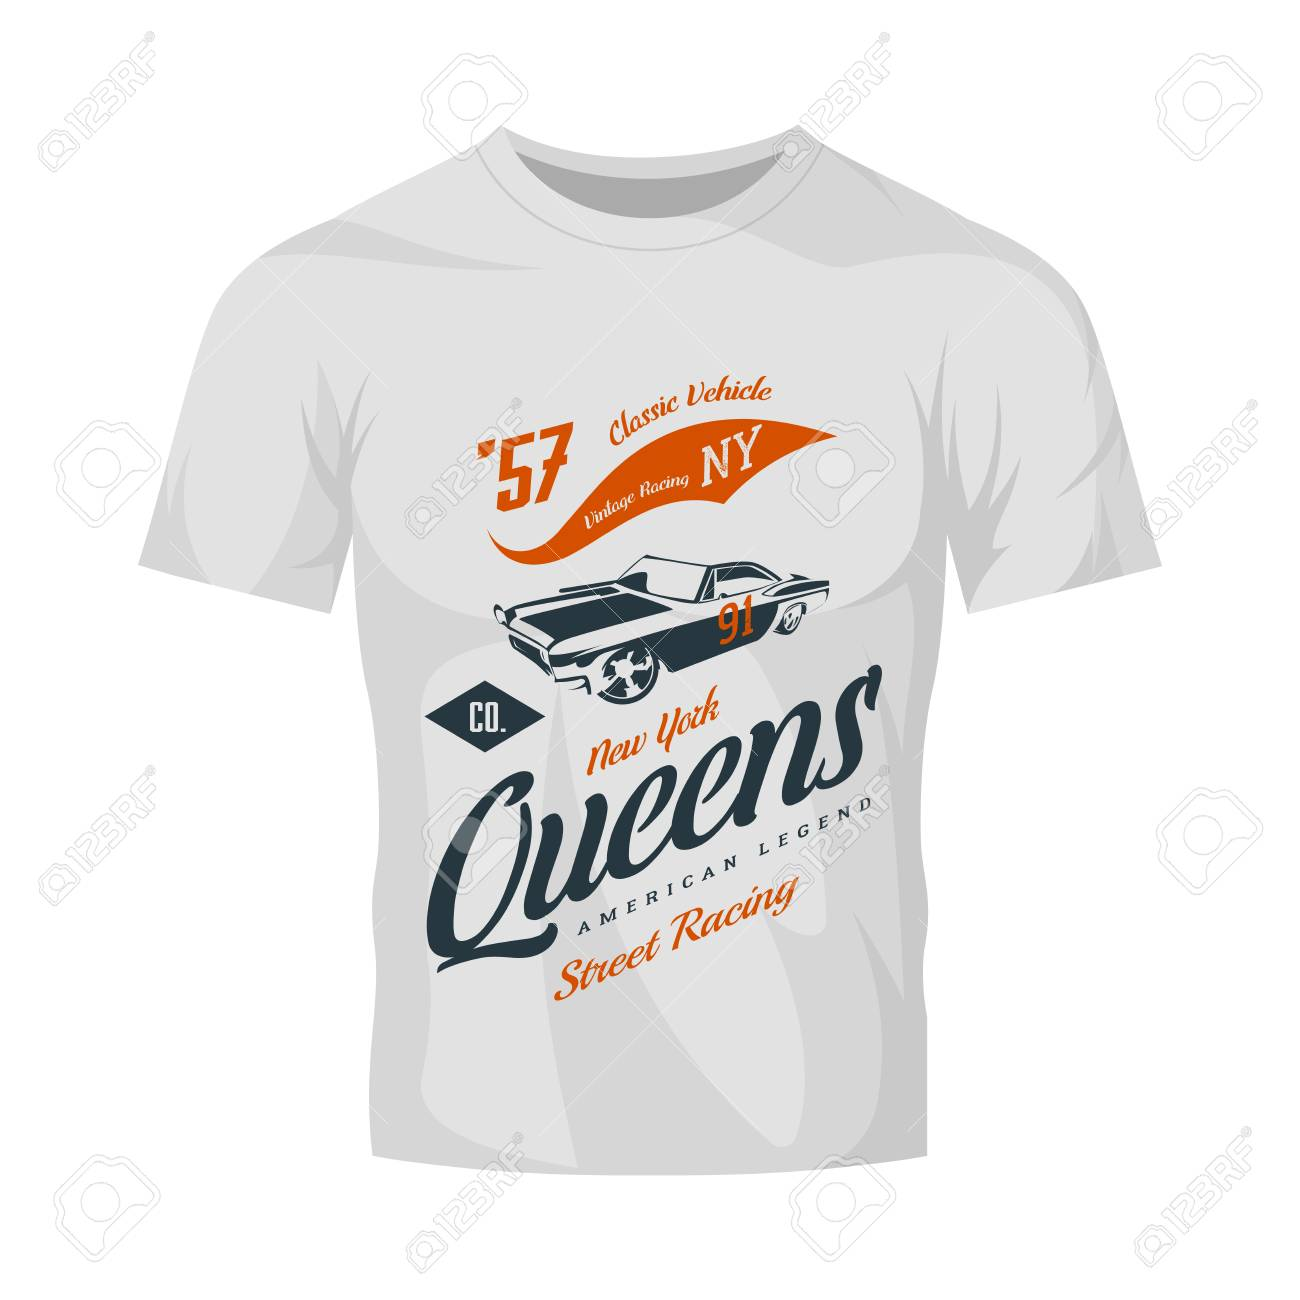 d308d76e3141 Vector - Vintage muscle car vector logo isolated on white t-shirt mock up. Premium  quality old sport vehicle logotype t-shirt emblem illustration.